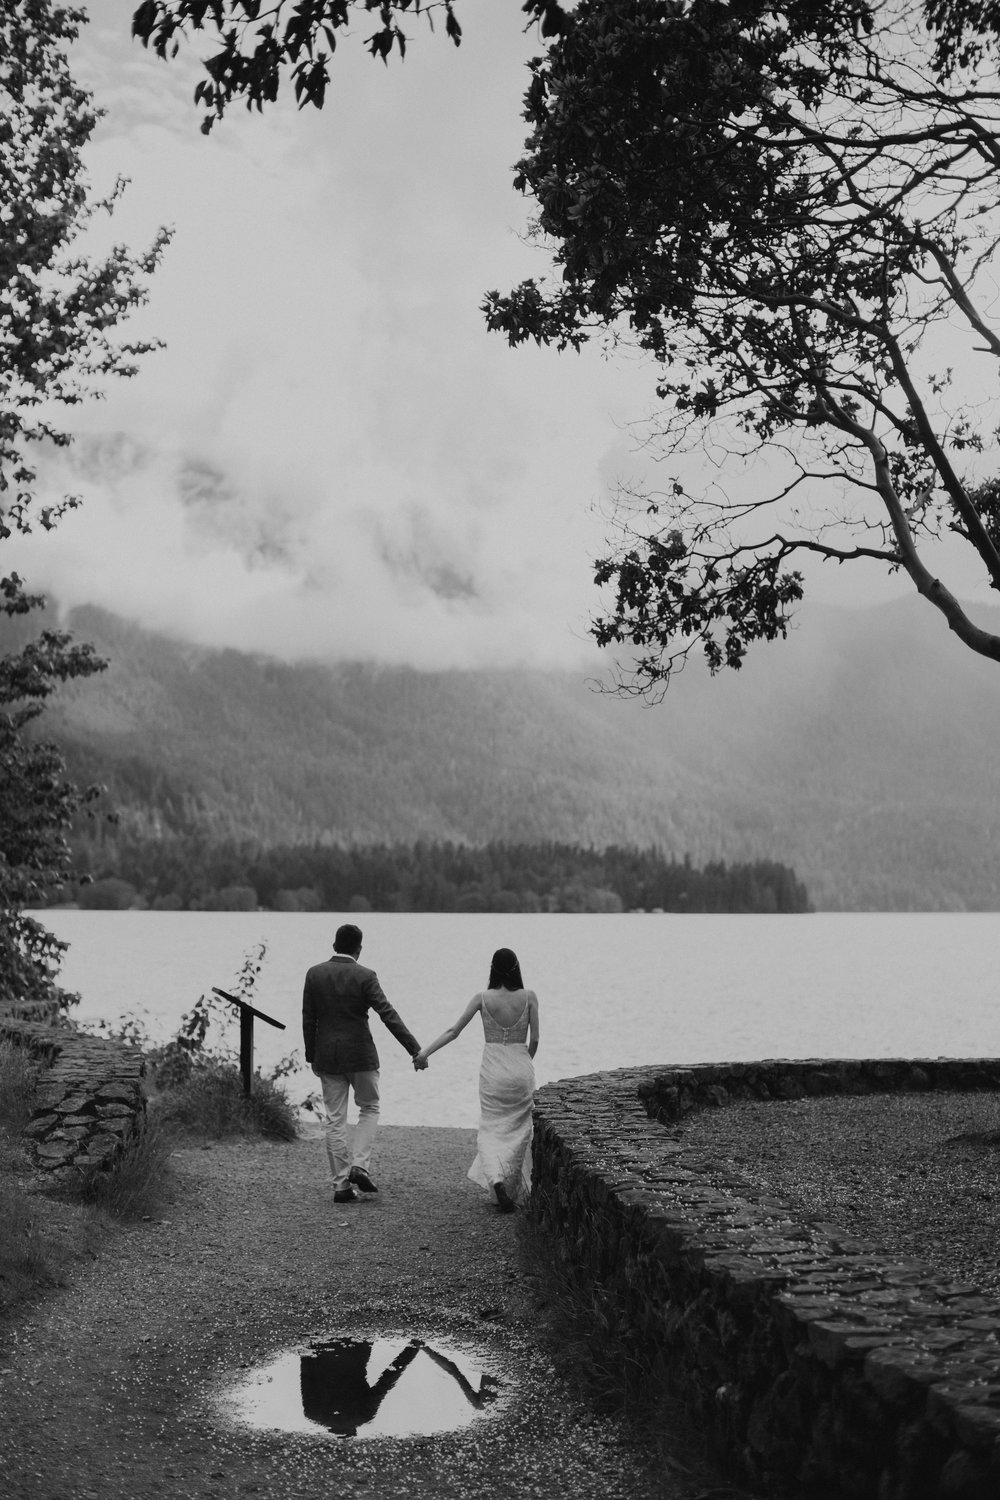 PNW-elopement-wedding-engagement-olympic national park-port angeles-hurricane ridge-lake crescent-kayla dawn photography- photographer-photography-kayladawnphoto-226.jpg